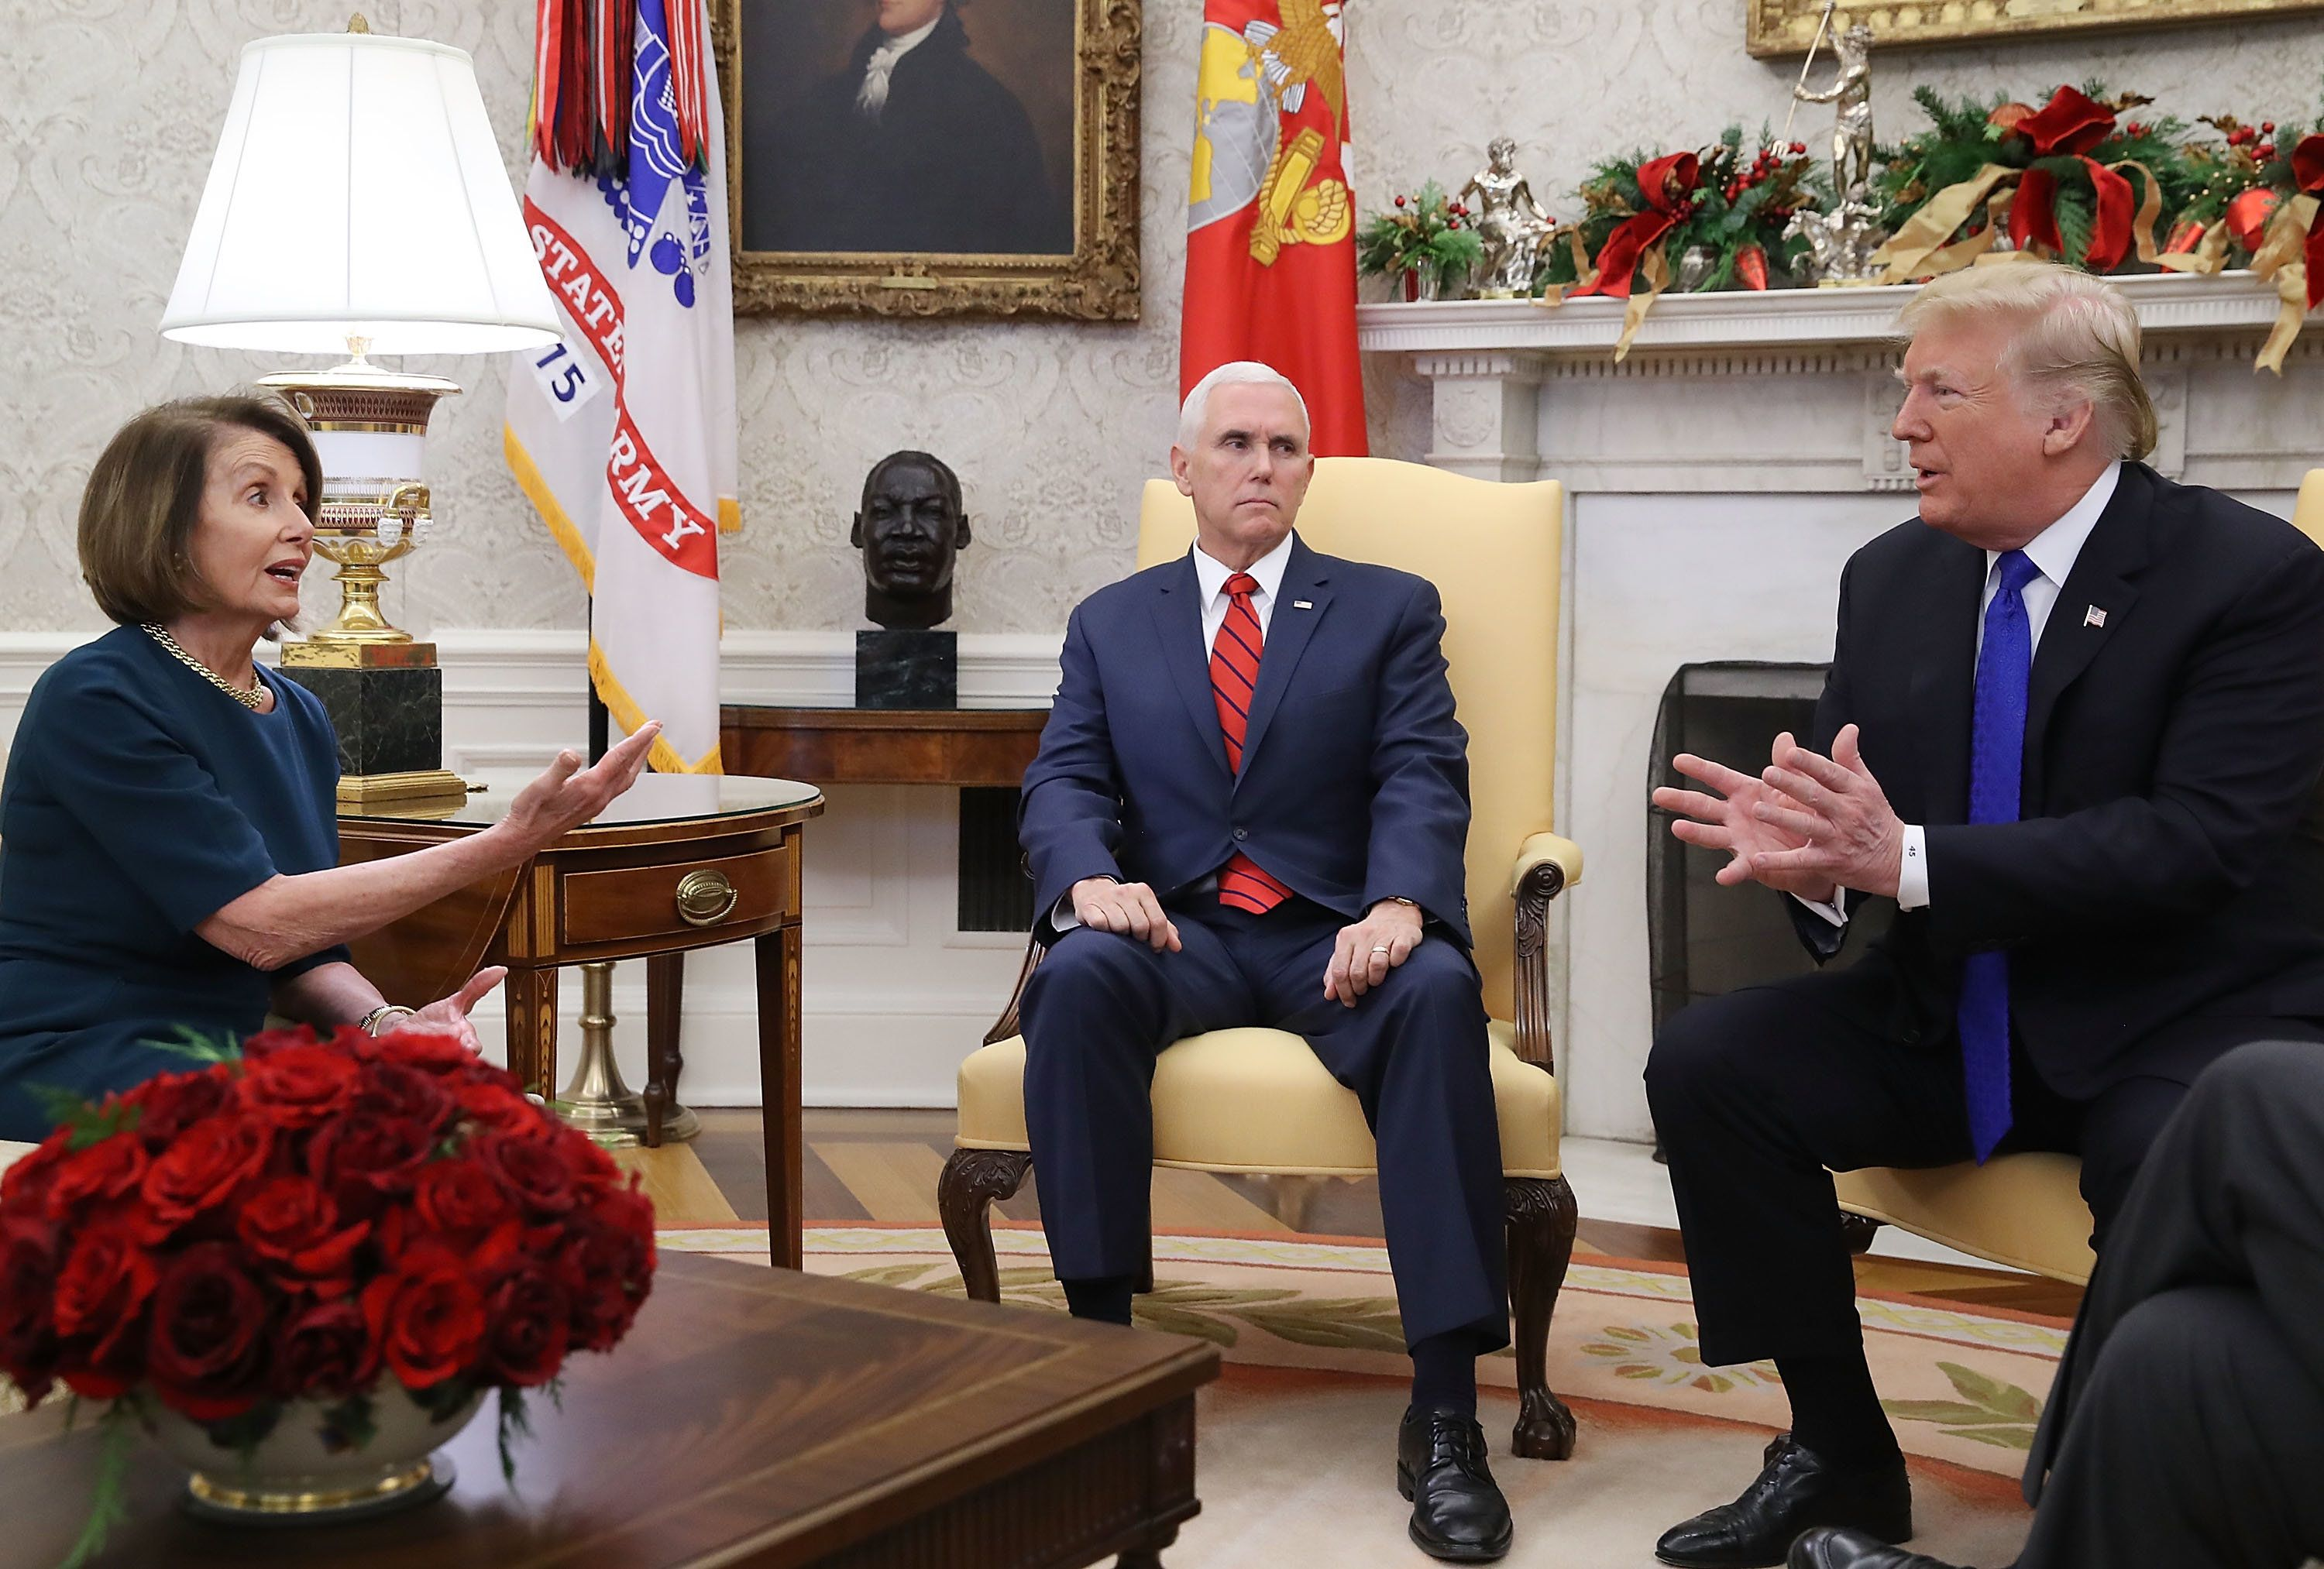 WASHINGTON, DC - DECEMBER 11:  U.S. President Donald Trump (R) argues about border security with House Minority Leader Nancy Pelosi (D-CA) as Vice President Mike Pence (C) sits nearby in the Oval Office on December 11, 2018 in Washington, DC.  (Photo by Mark Wilson/Getty Images)